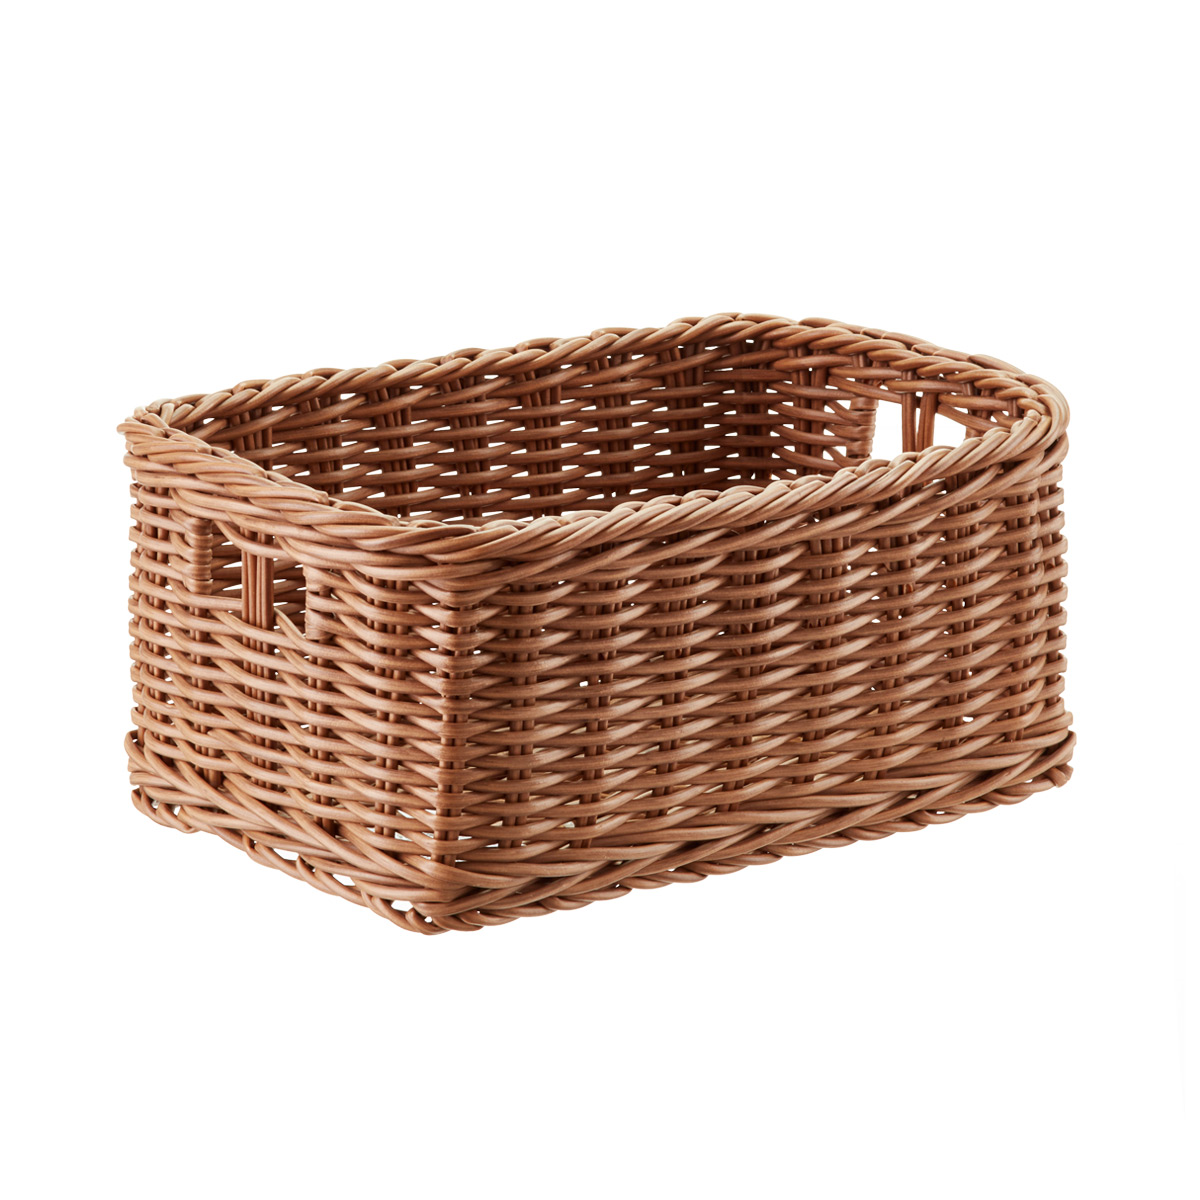 wicker baskets plastic wicker storage bin with handles UDBYJCR